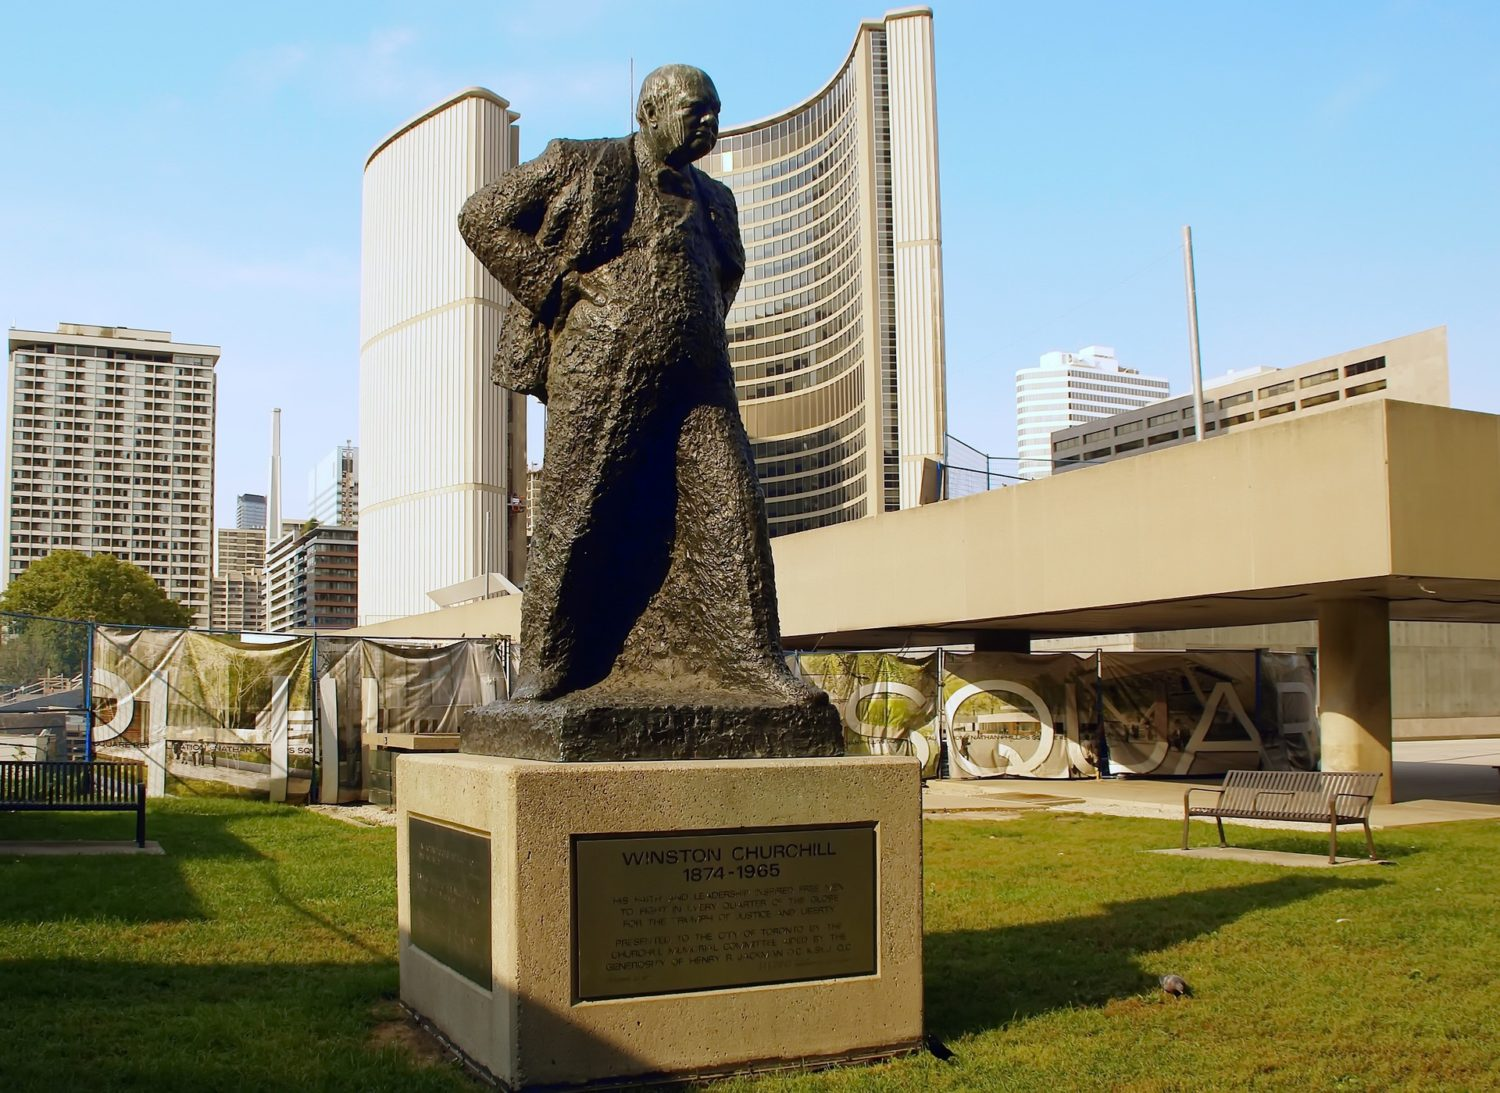 Winston Churchill statue at City H​all, Toronto, Canada